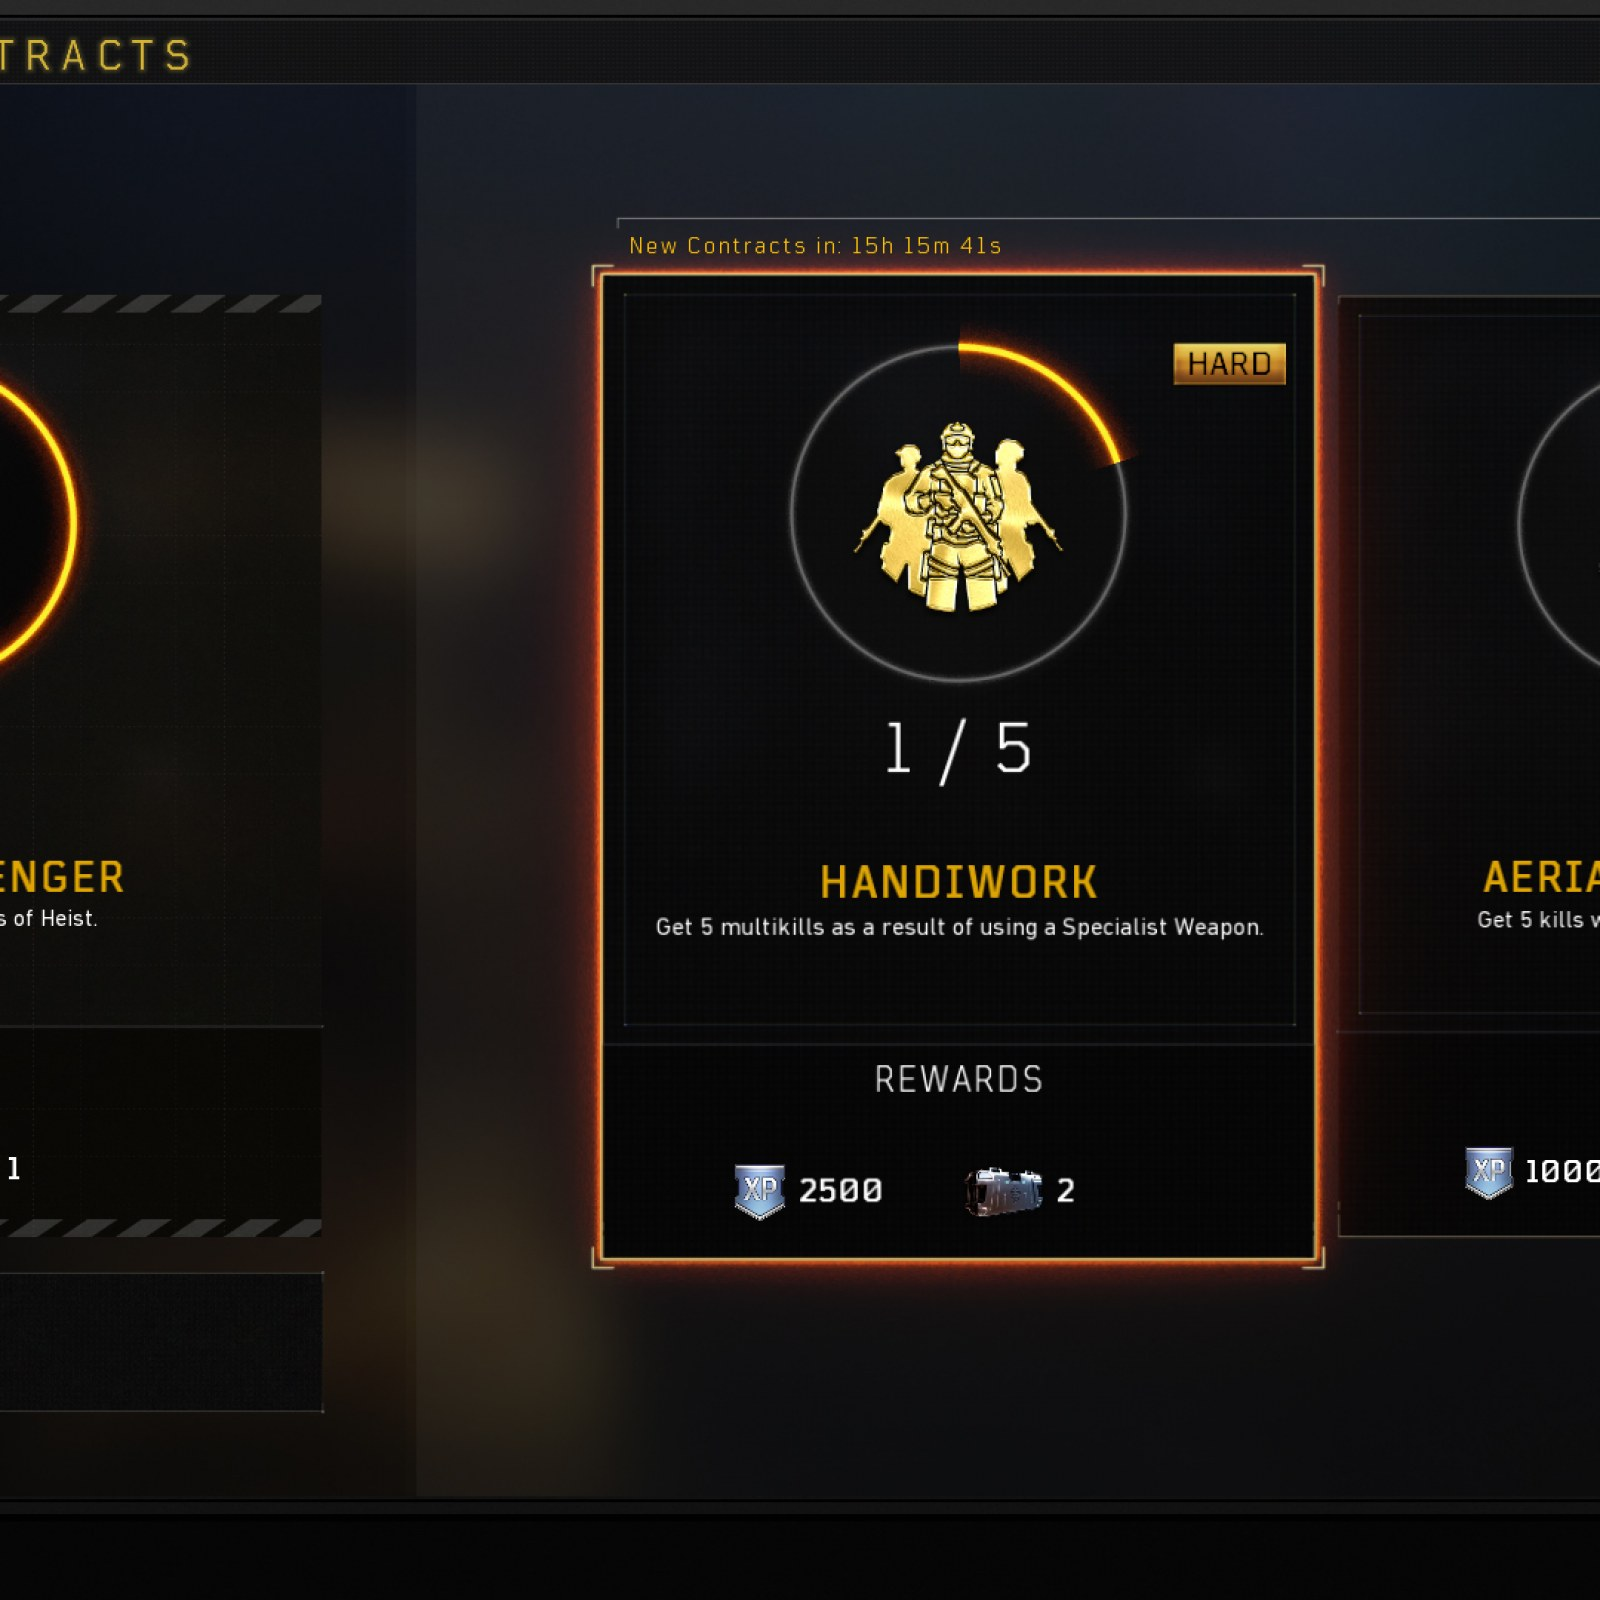 Call of Duty: Black Ops 4' Update 1 19 Adds Contracts